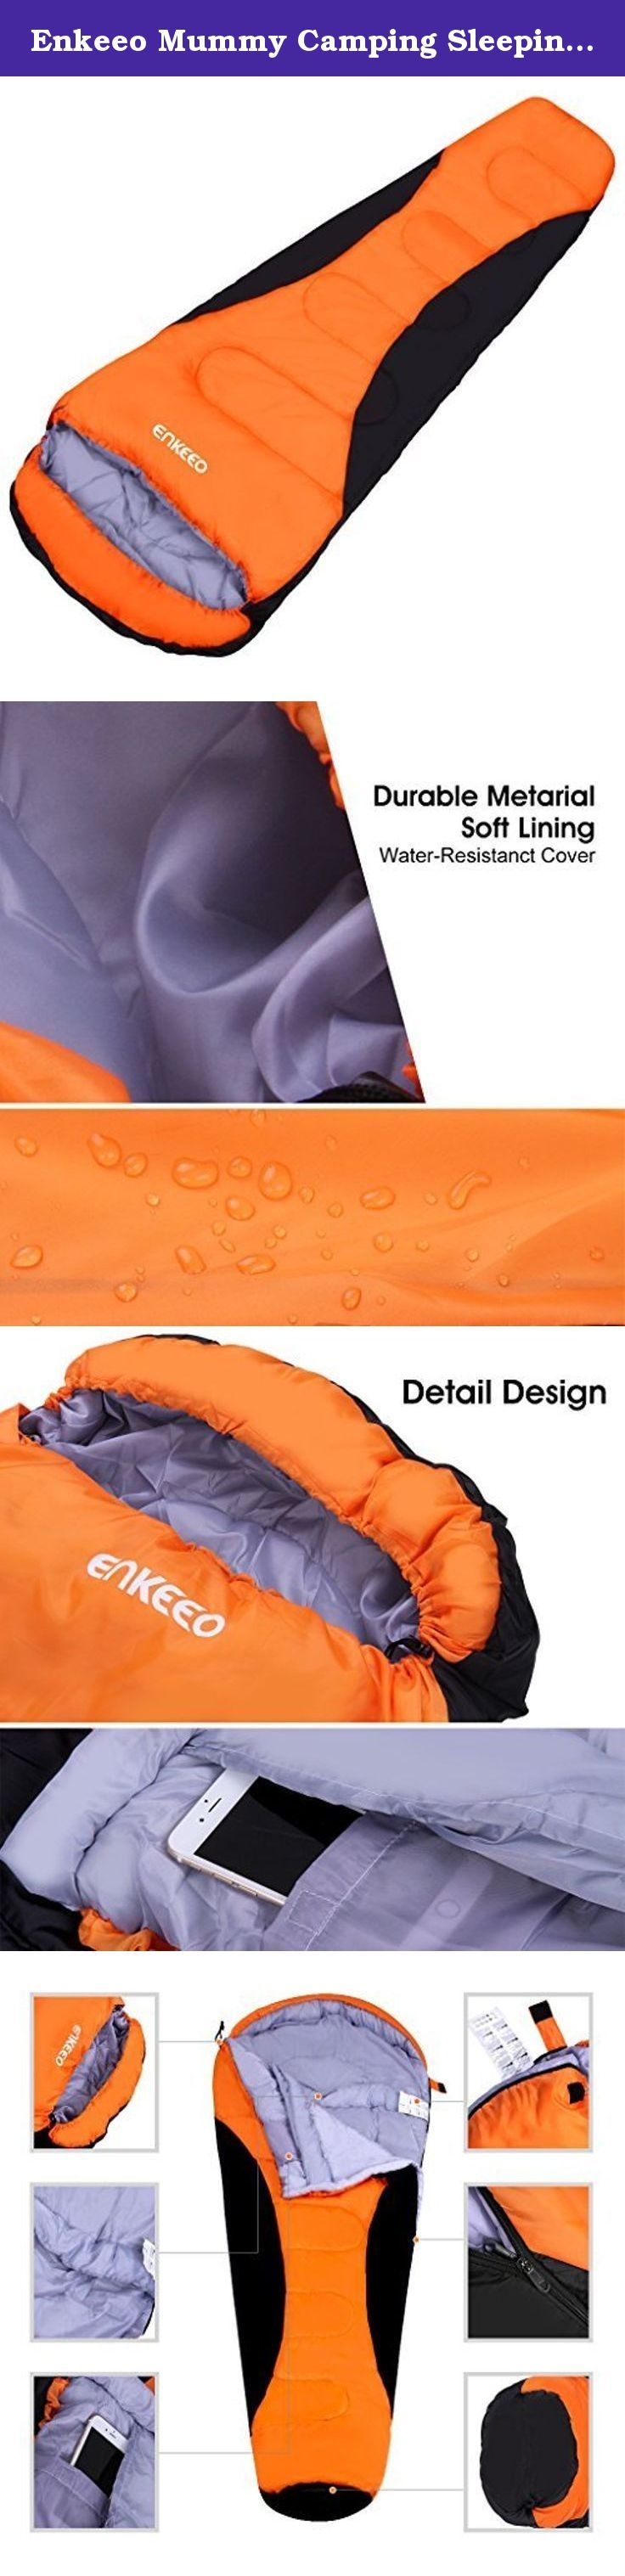 Enkeeo Mummy Camping Sleeping Bag 91x34 Inch 20-30 Degree Ultralight Sleeping Bag with Waterproof Taffeta Shell/ Breathable Hollow Cotton, Compression Sack for 4 Season Hiking (Black & Orange). Your Home Bed while Sleeping Outdoor The outer shell of our sleeping bag is made of waterproof taffeta for durability and the inner lining is made of long lasting pongee with soft and breathable hollow cotton to let your body moisture evaporate and minimize the amount of heat your body loses while...